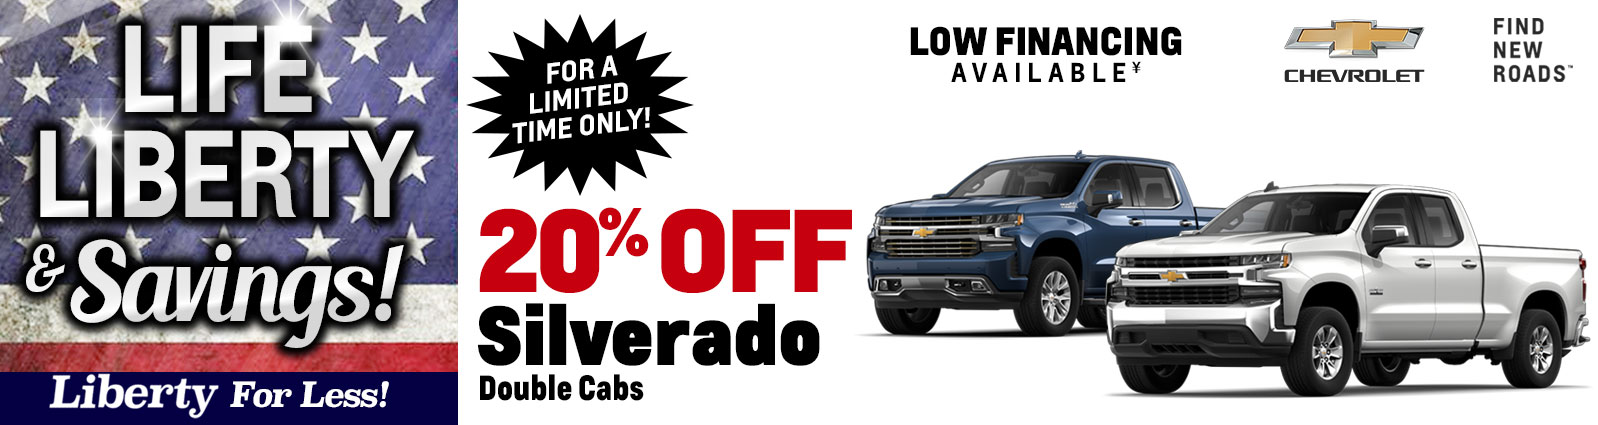 Lease Specials Near Me >> New Chevy Specials Near Me Lease A New Chevy Near Malden Ma